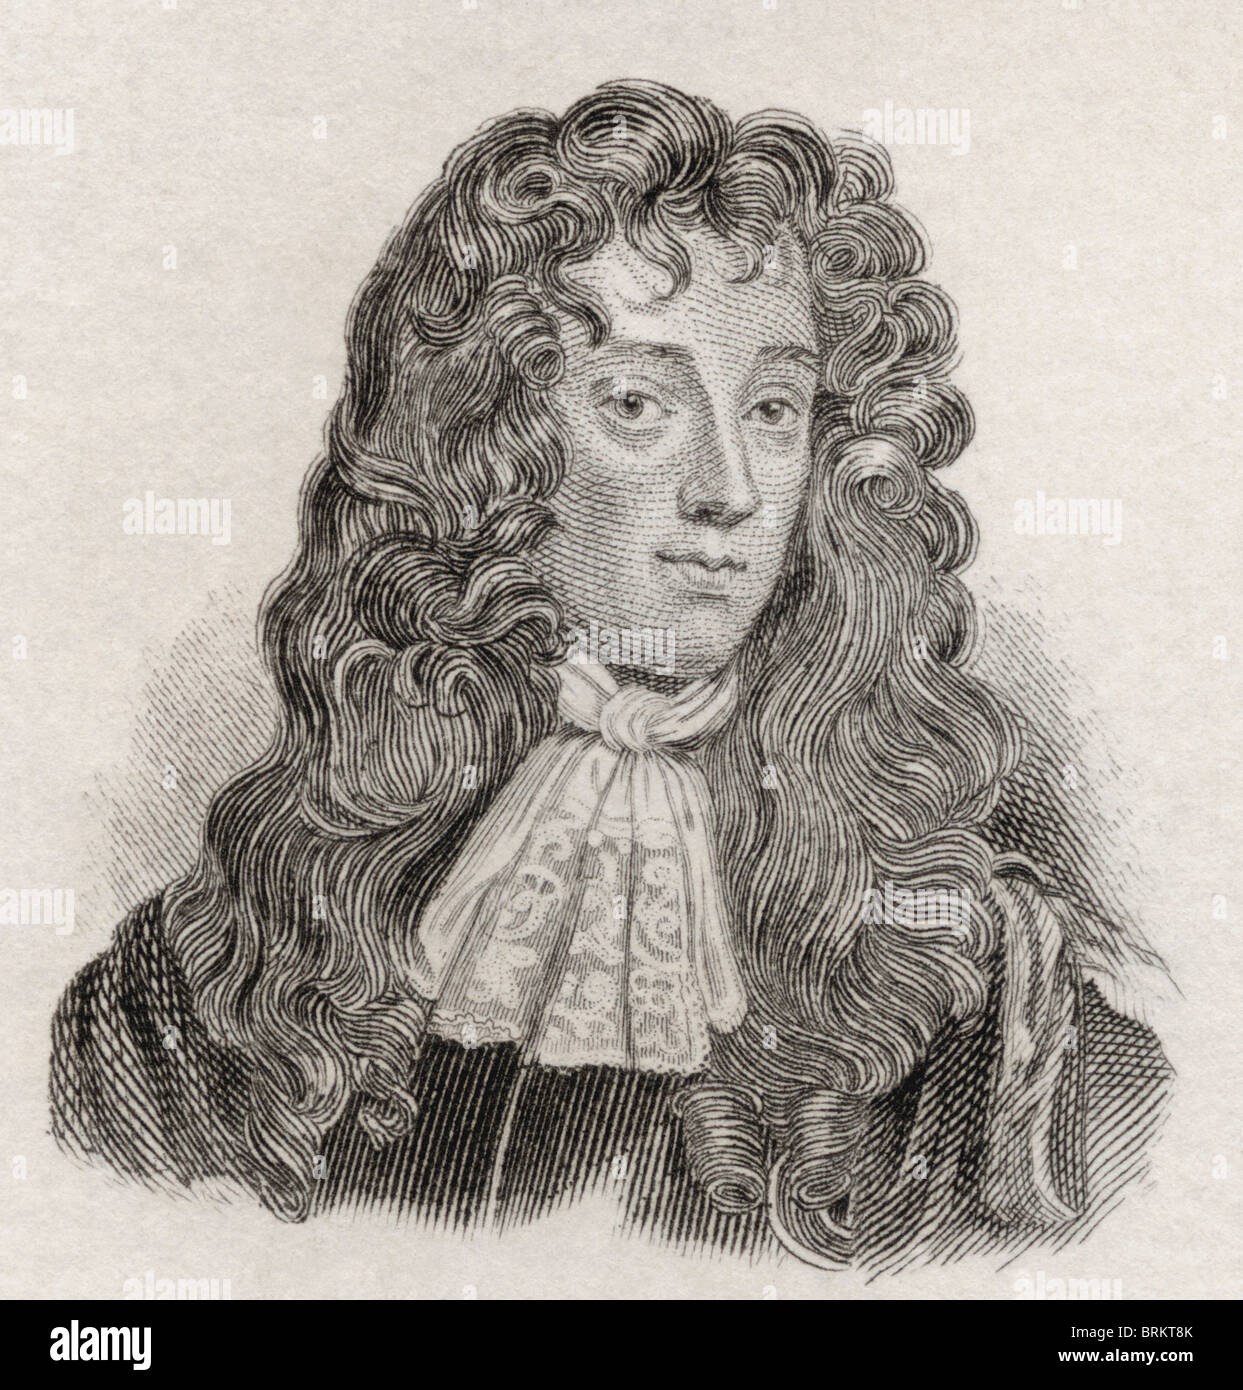 John Wilmot, 2nd Earl of Rochester, 1647 to 1680. English Libertine poet, writer of satirical and bawdy poetry. - Stock Image